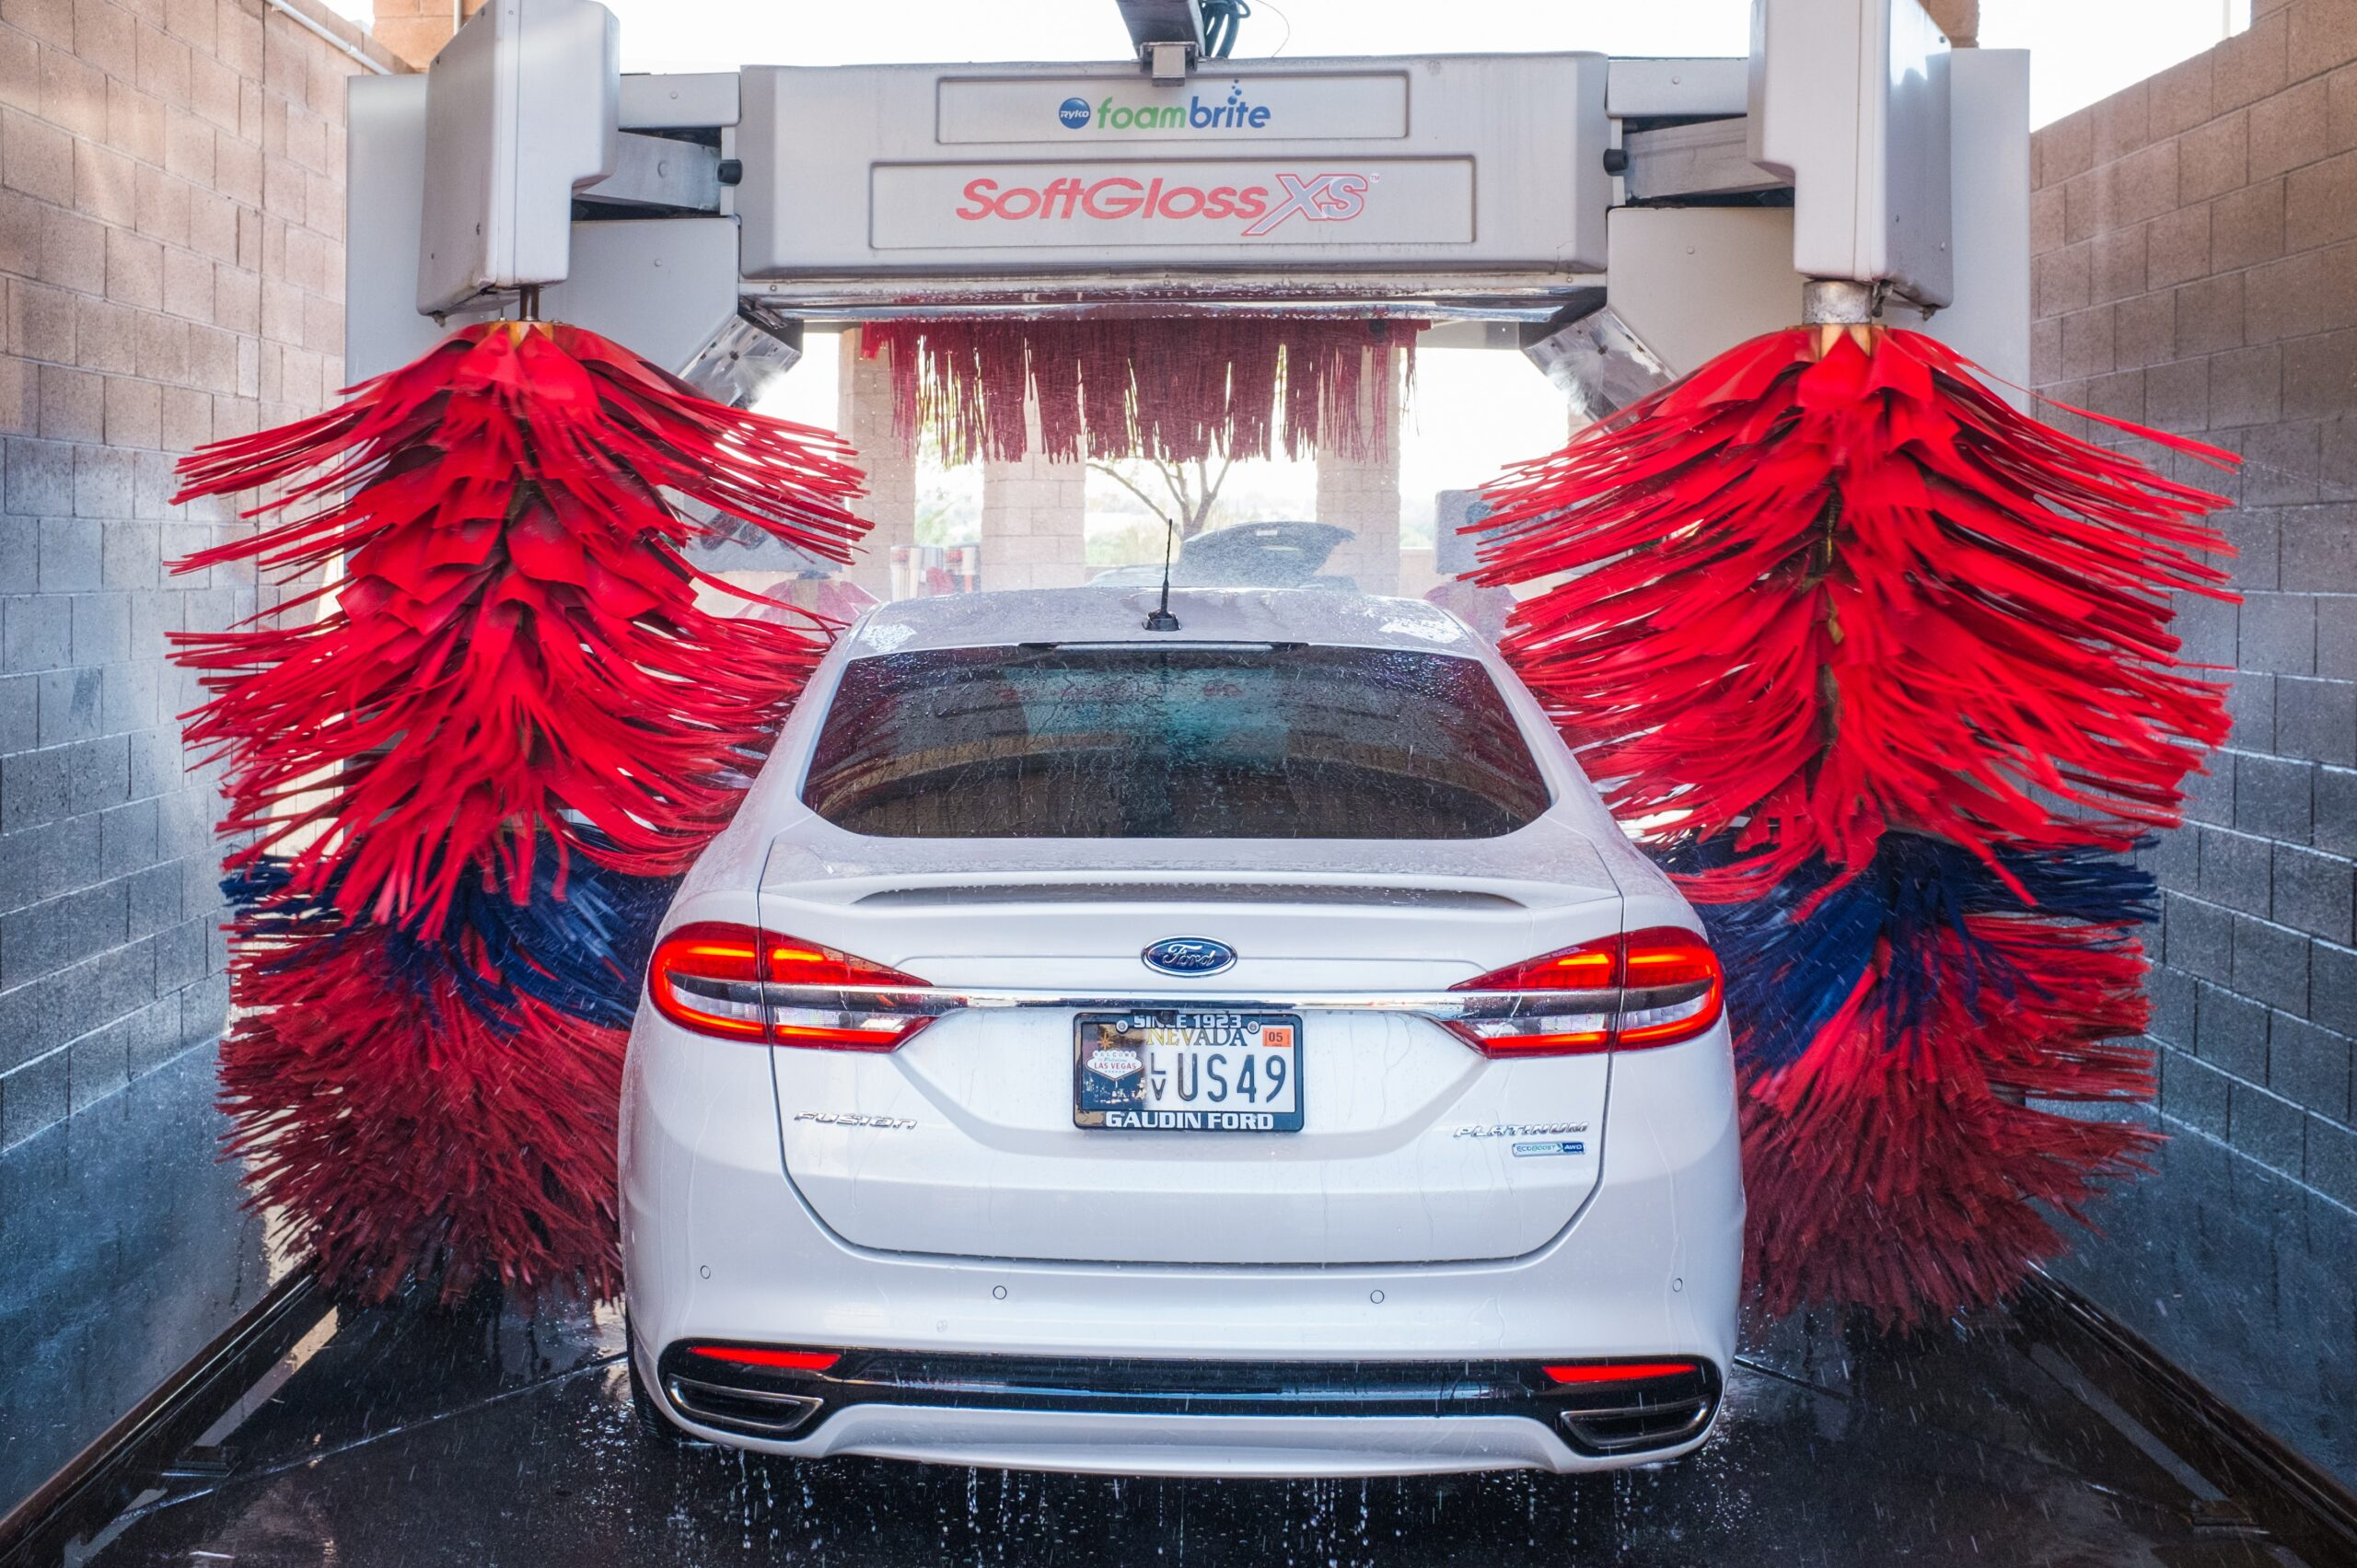 Can you take your wrapped vehicle through a car wash?